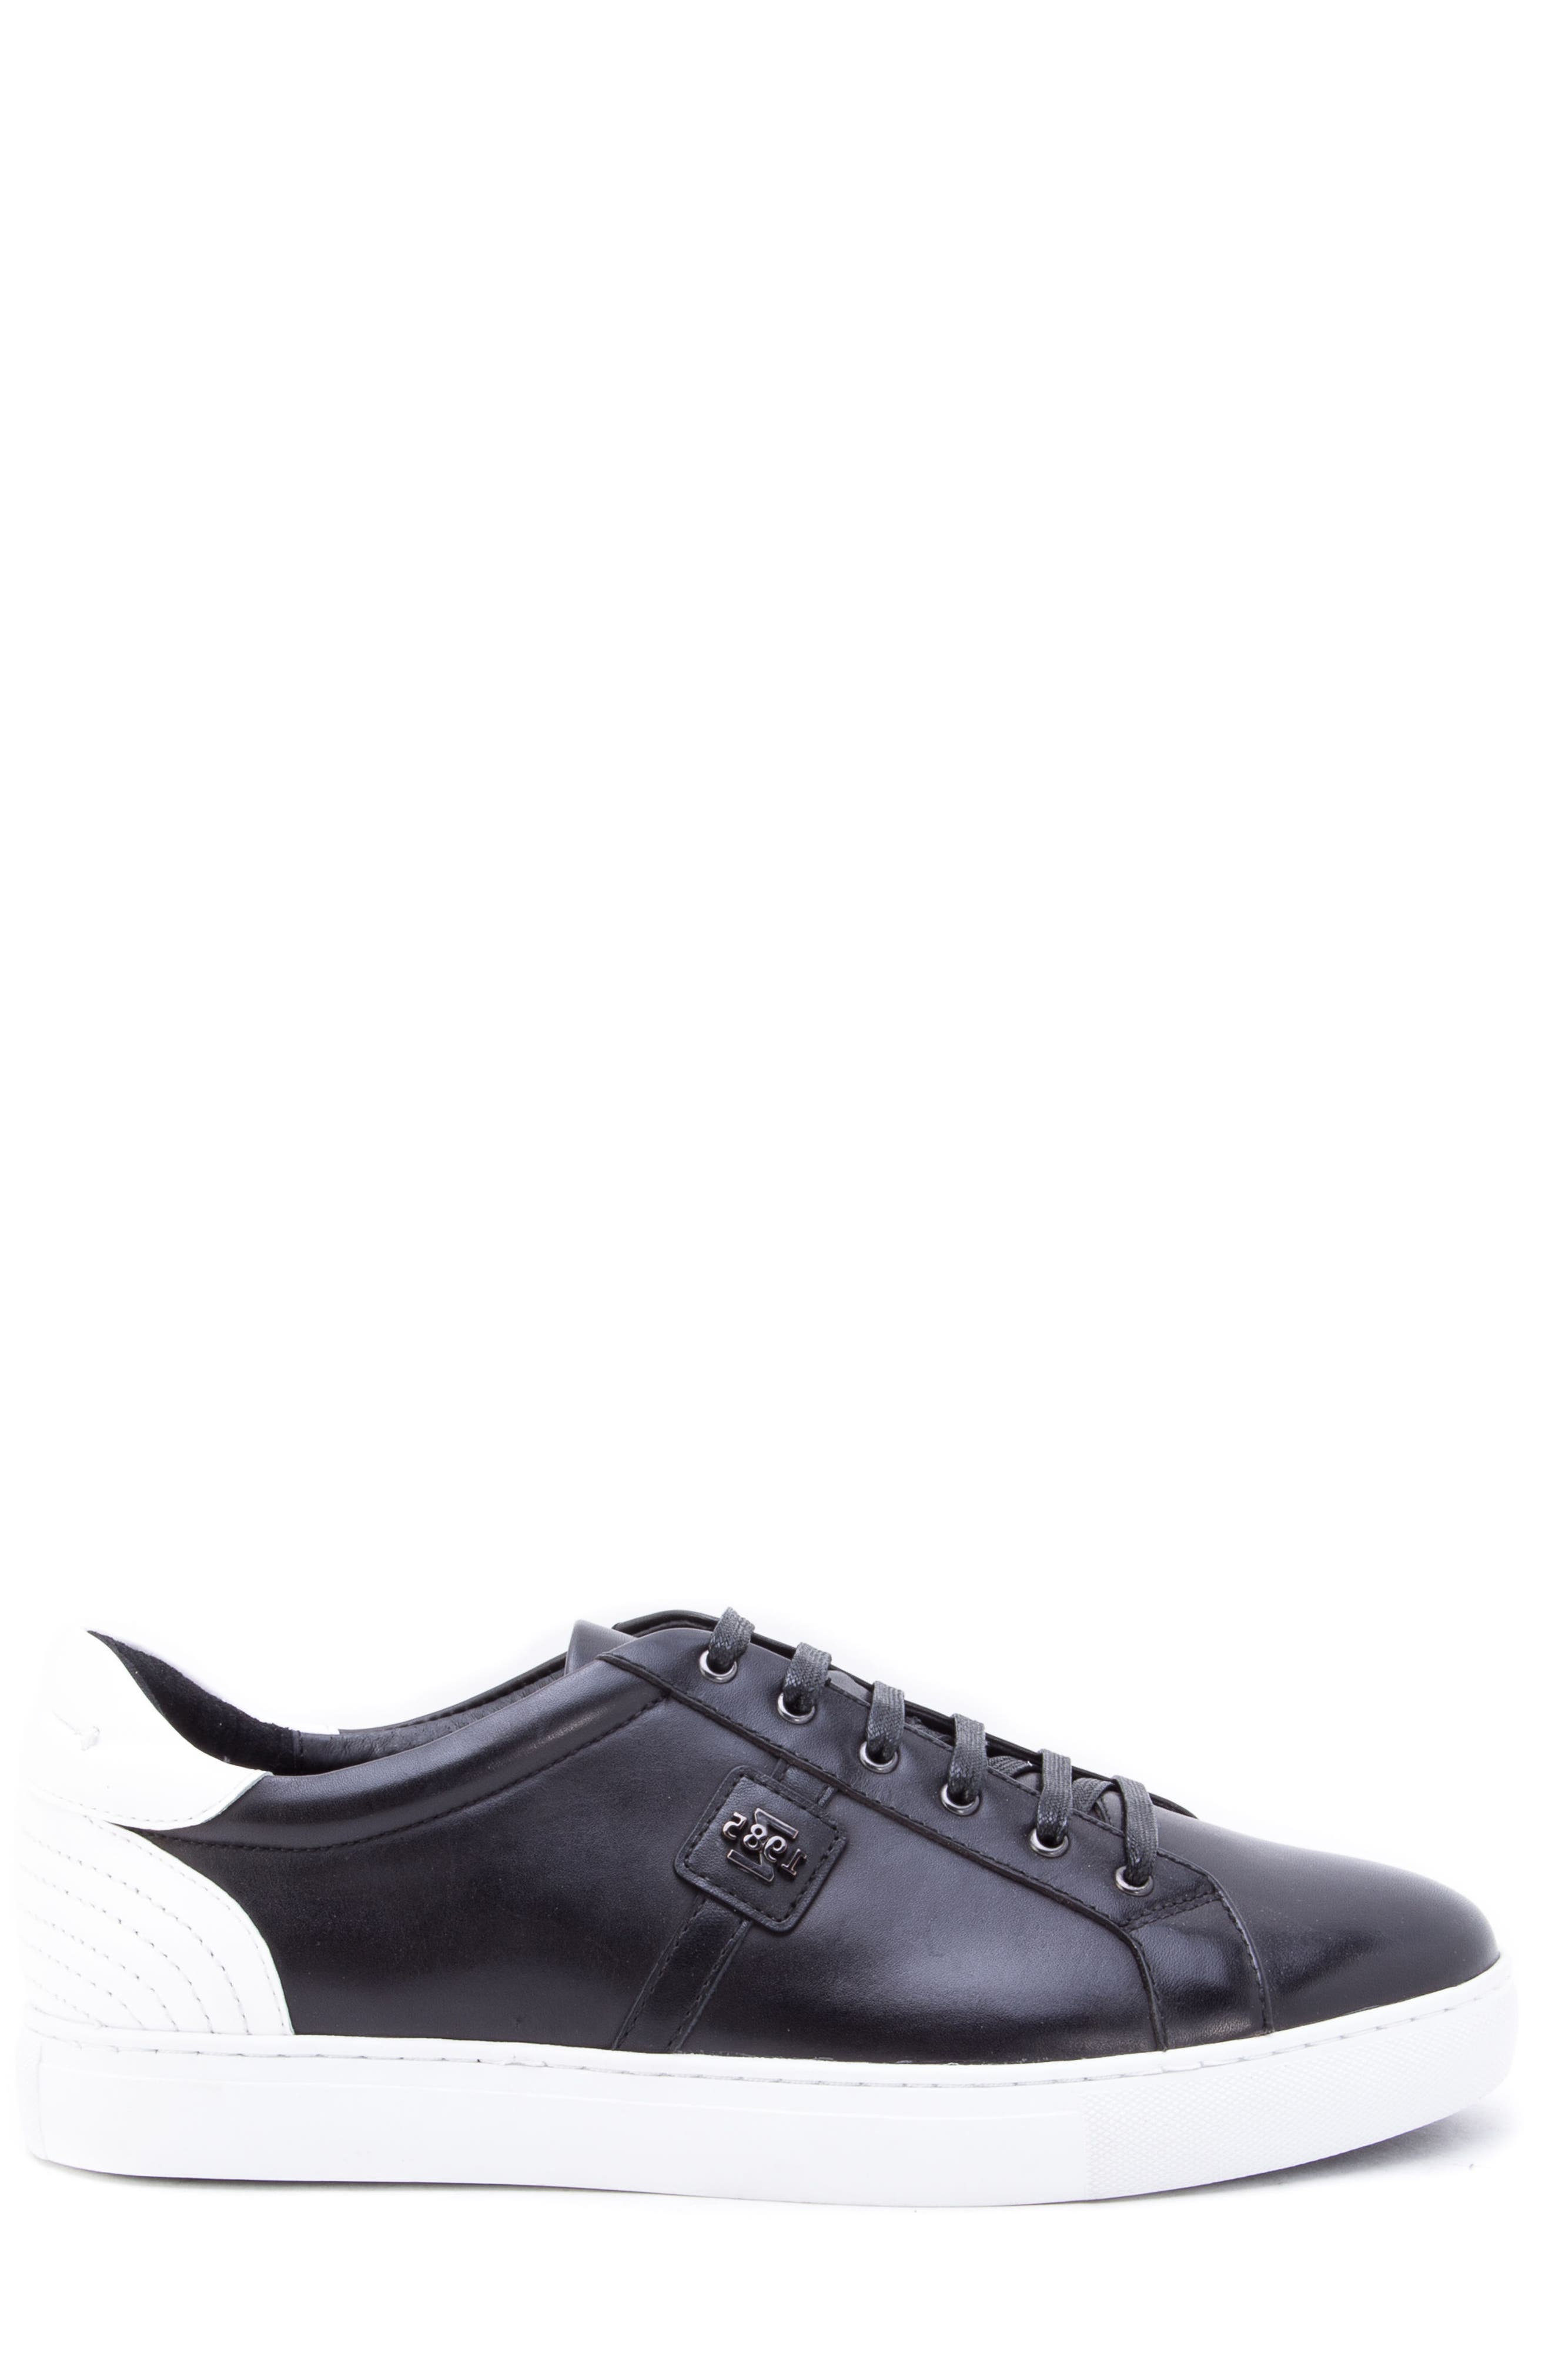 Scheffer Low Top Sneaker,                             Alternate thumbnail 3, color,                             BLACK LEATHER